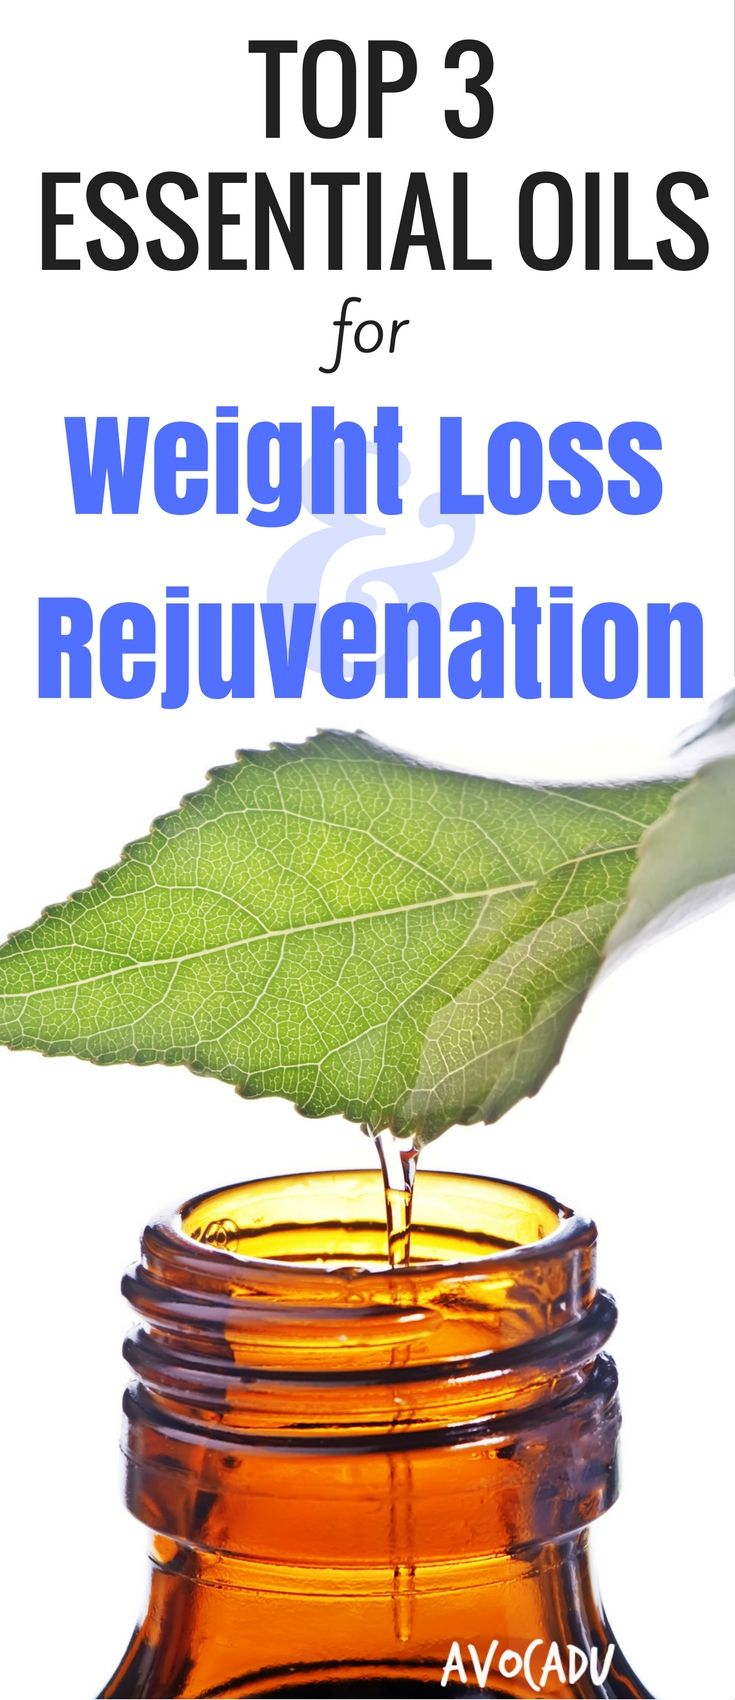 Herbs for weight loss Top Three Essential Oils for Weight loss and Rejuvenation